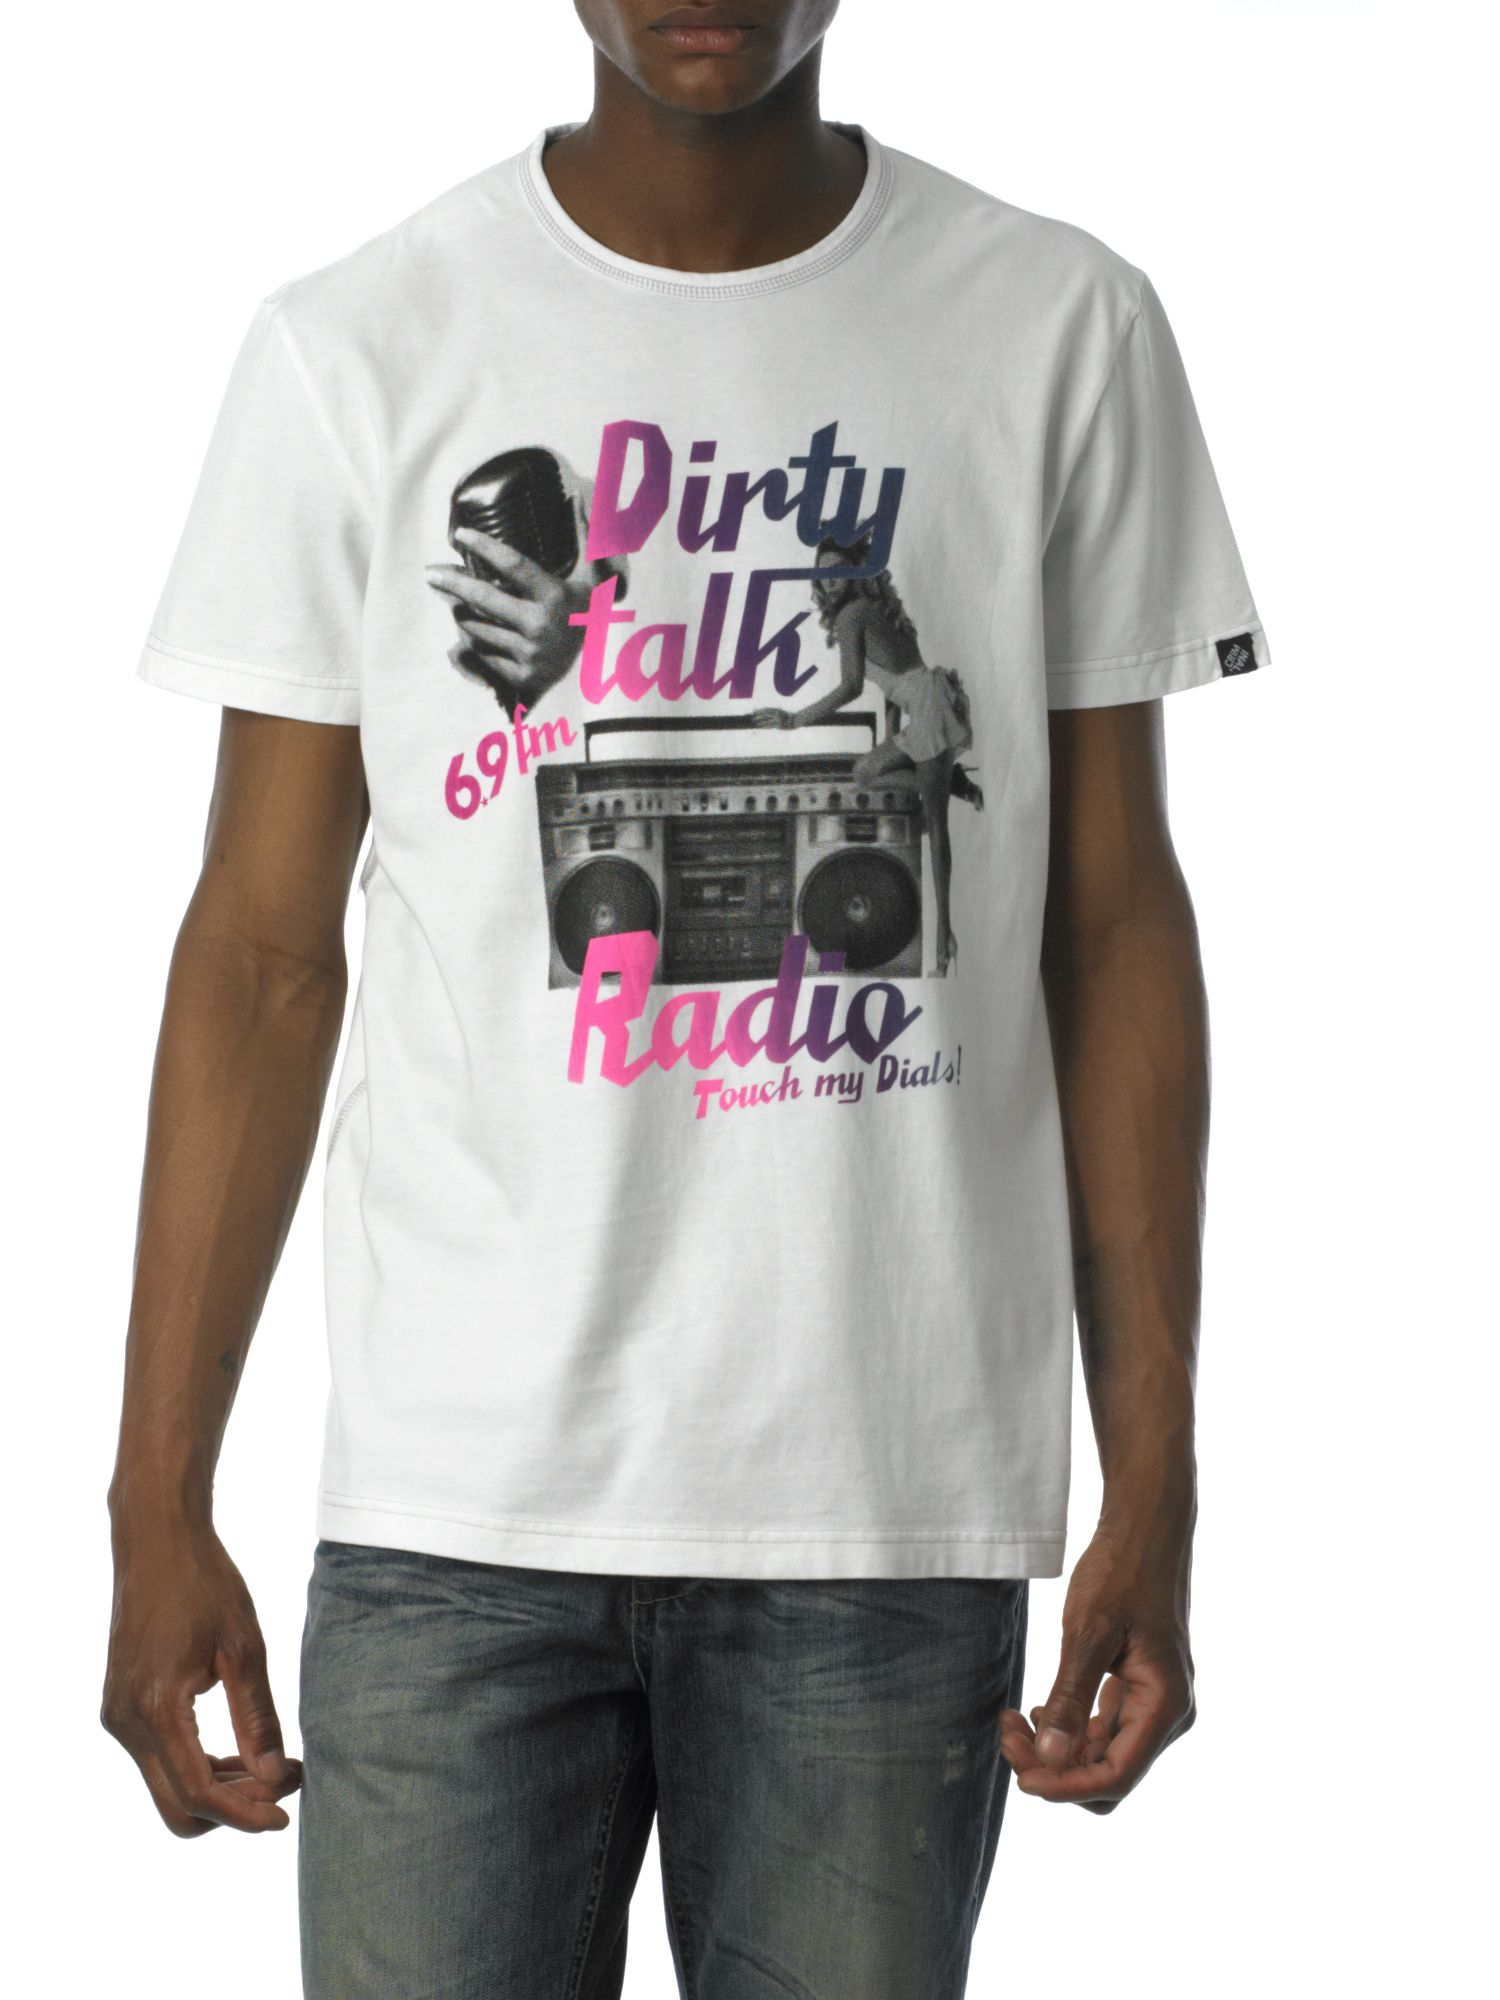 Criminal Radio touch my dials! printed graphic tee product image